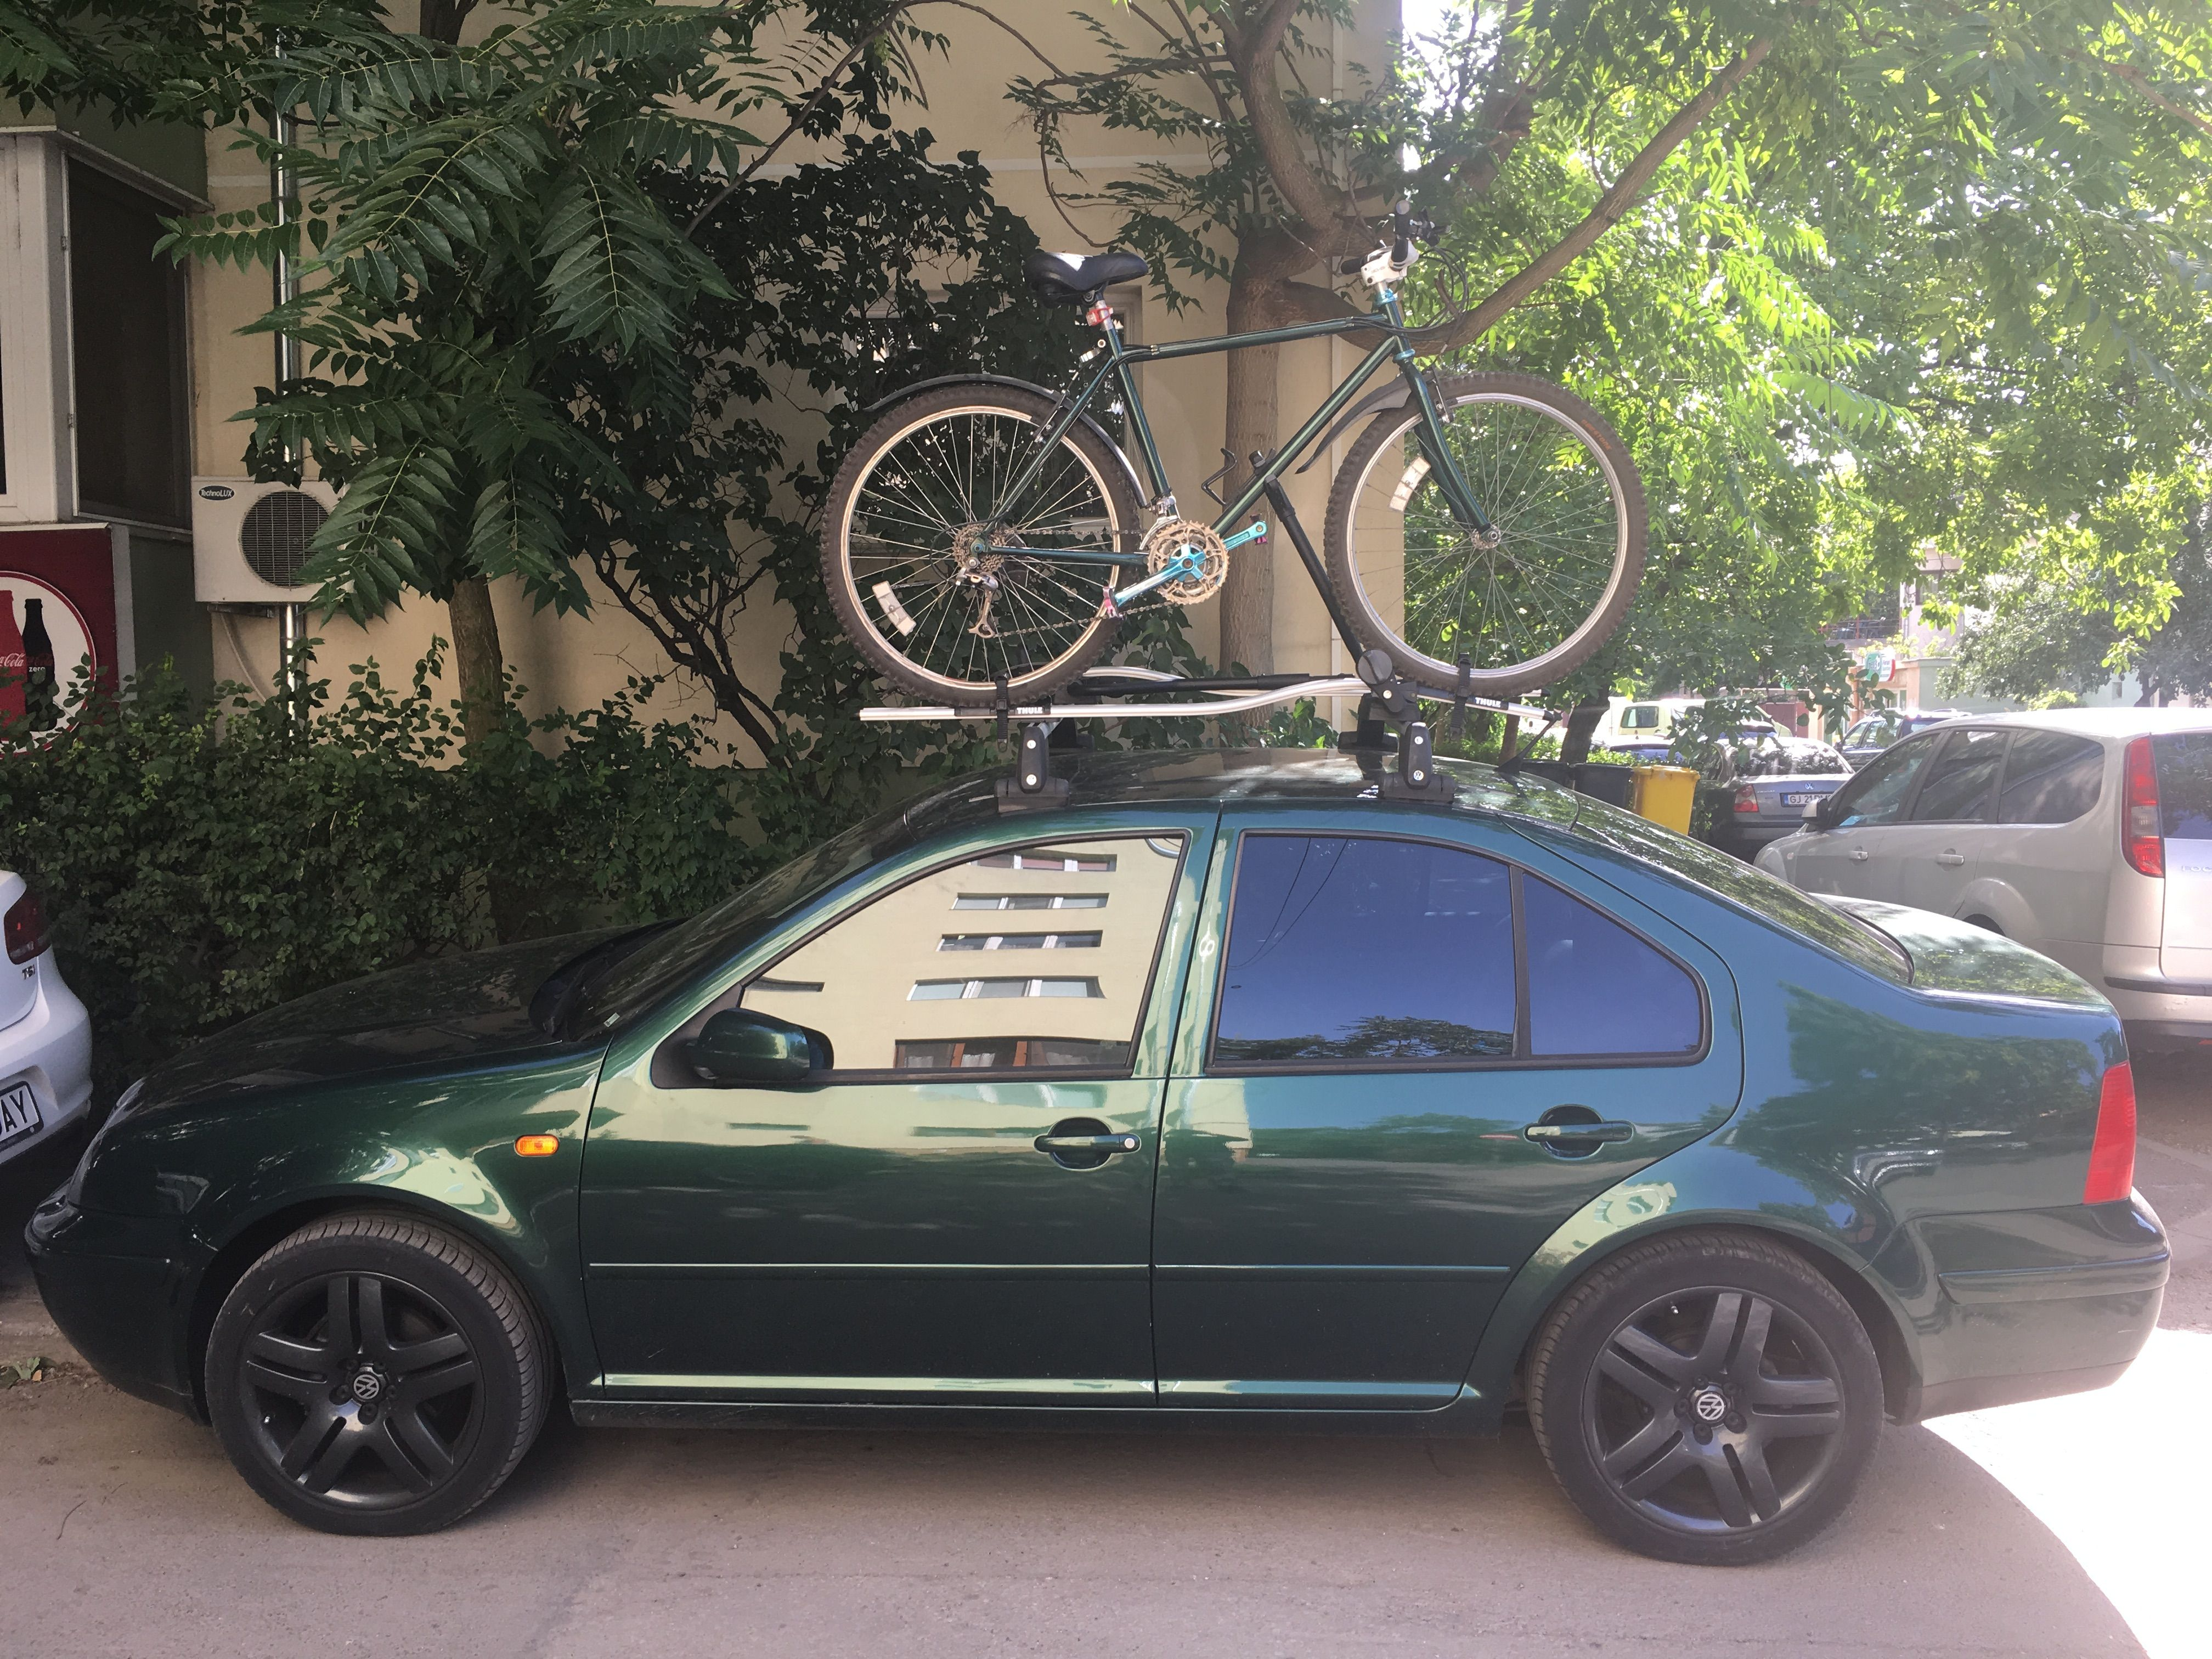 Vw bora jetta mk4 with 17 inch vw long beach wheels and original vw roof